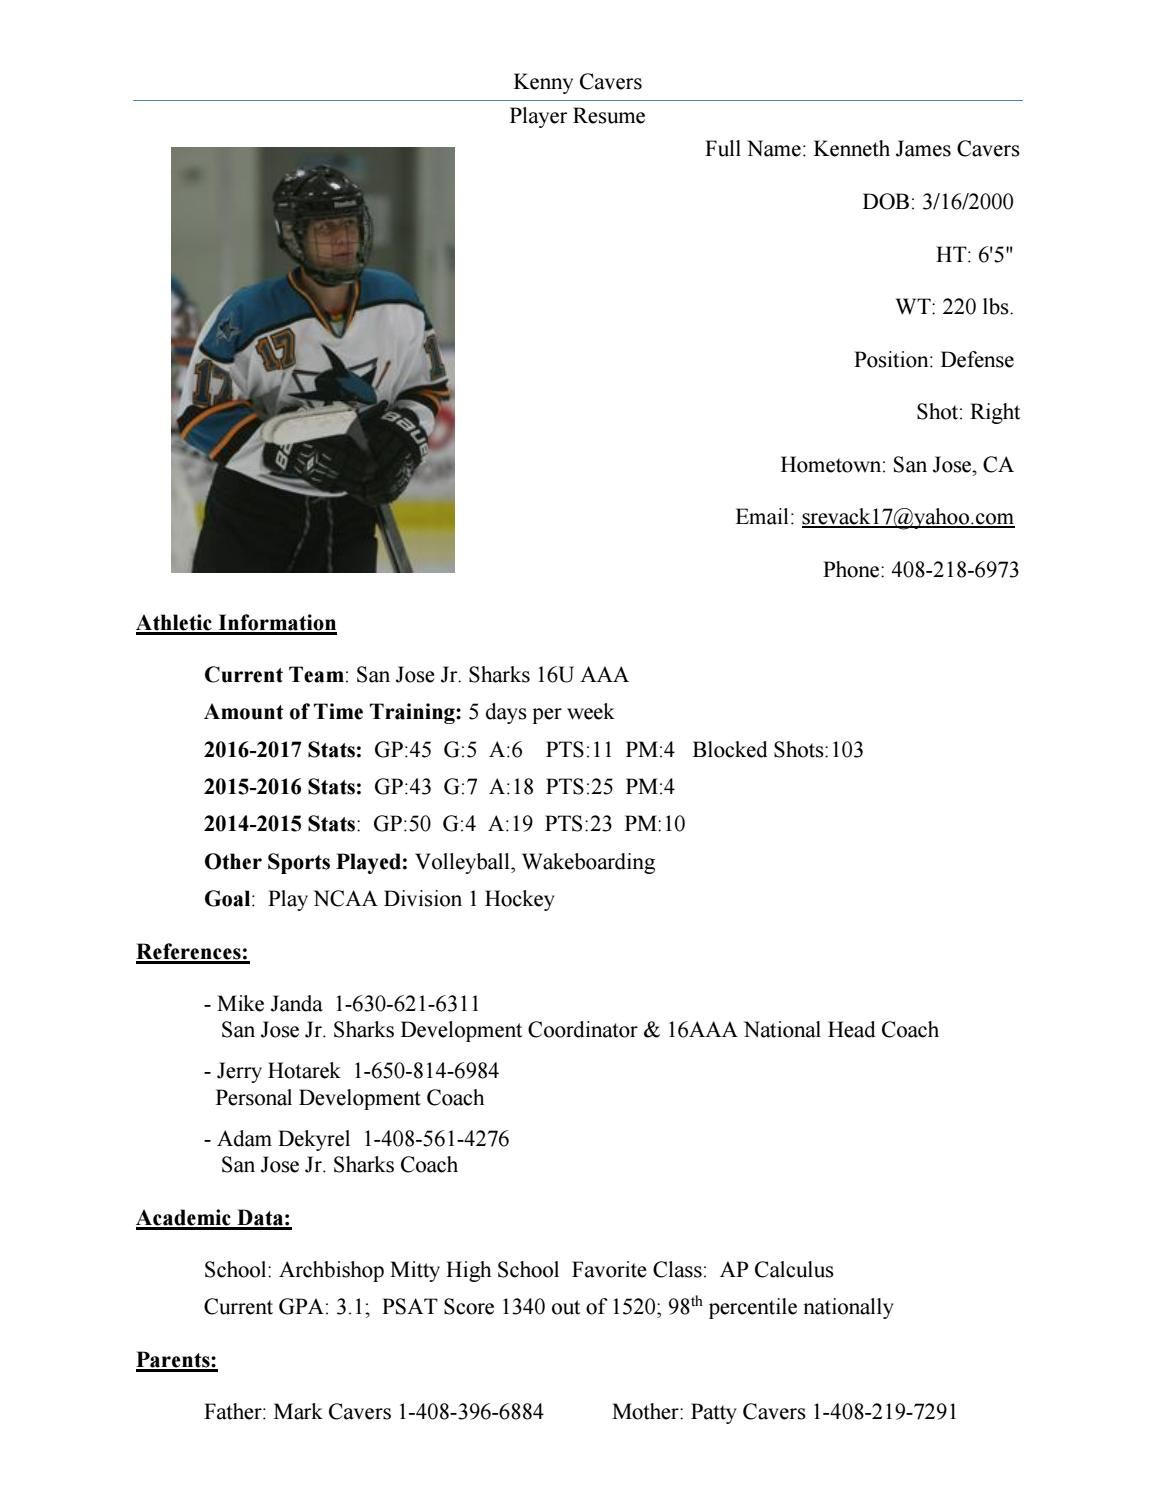 kenneth cavers hockey resume by strength edge athletics